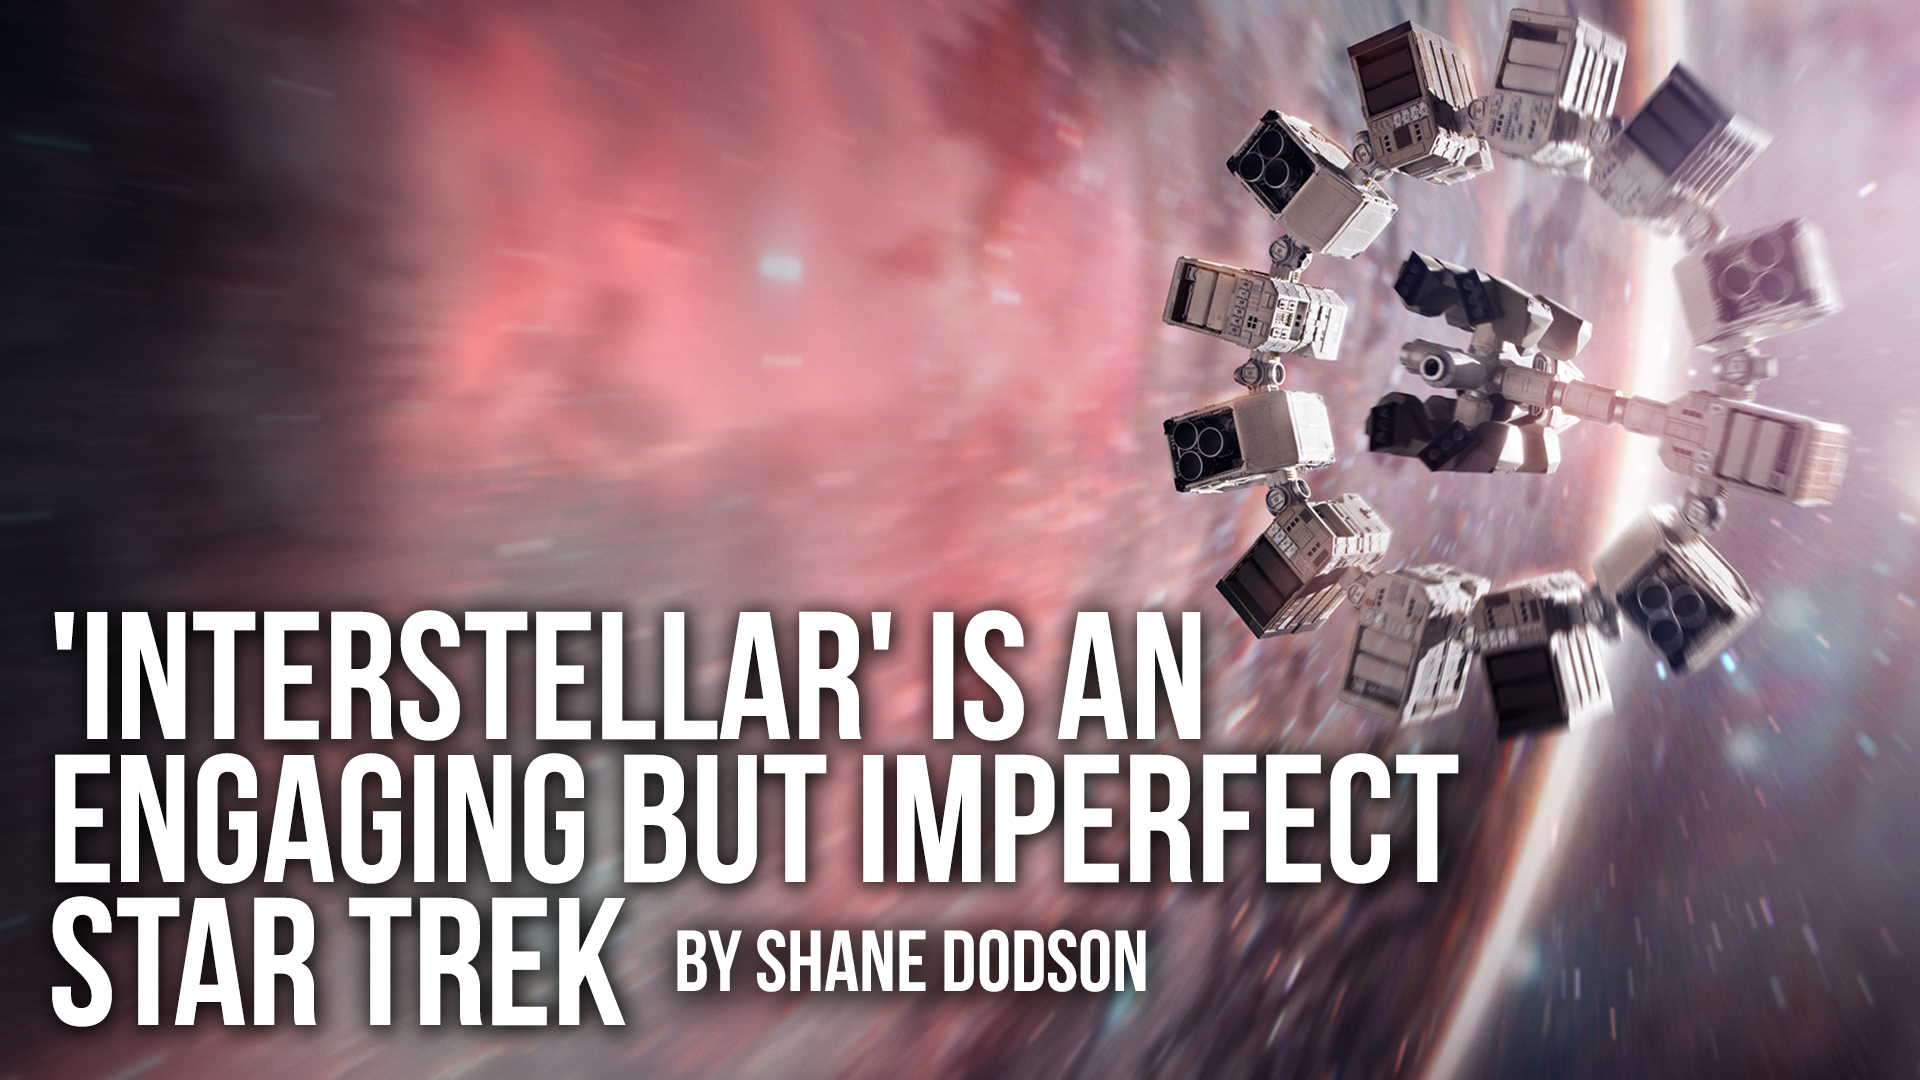 'Interstellar' Is An Engaging But Imperfect Star Trek